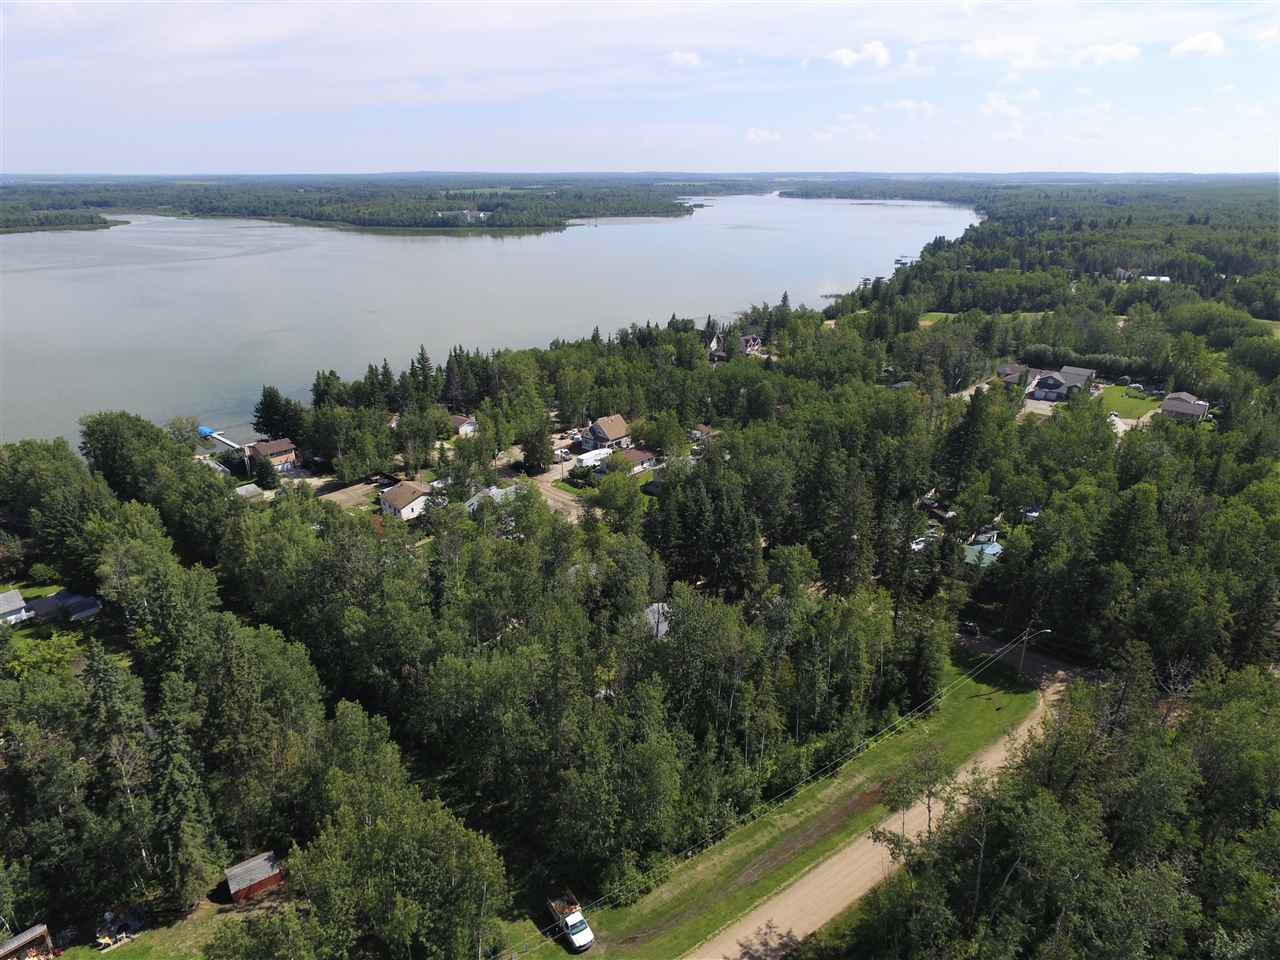 Fully Treed Lot at Lake Nakamun. Steps to the Lake. Corner Lot means Only One Neighbor and Loads of Parking. Power and Gas at the Property Line. .25 Acres (10,890 sq.ft.) of Solid Trees. Plan your lot the way You like it. Great Opportunity. Boat launch is close and a Big Park is a couple blocks away. Lake Nakamun is a one of Alberta's Hidden Treasures when it comes to Lakes. Not too busy. Quiet and Easy Going Lake Life. Take a Look, Walk Around and see why Poeple LOVE Living at Lake Nakamun. Water Sports in the Summer and Sledding/Ice Fishing in Winter. Full 4 Season Fun!!